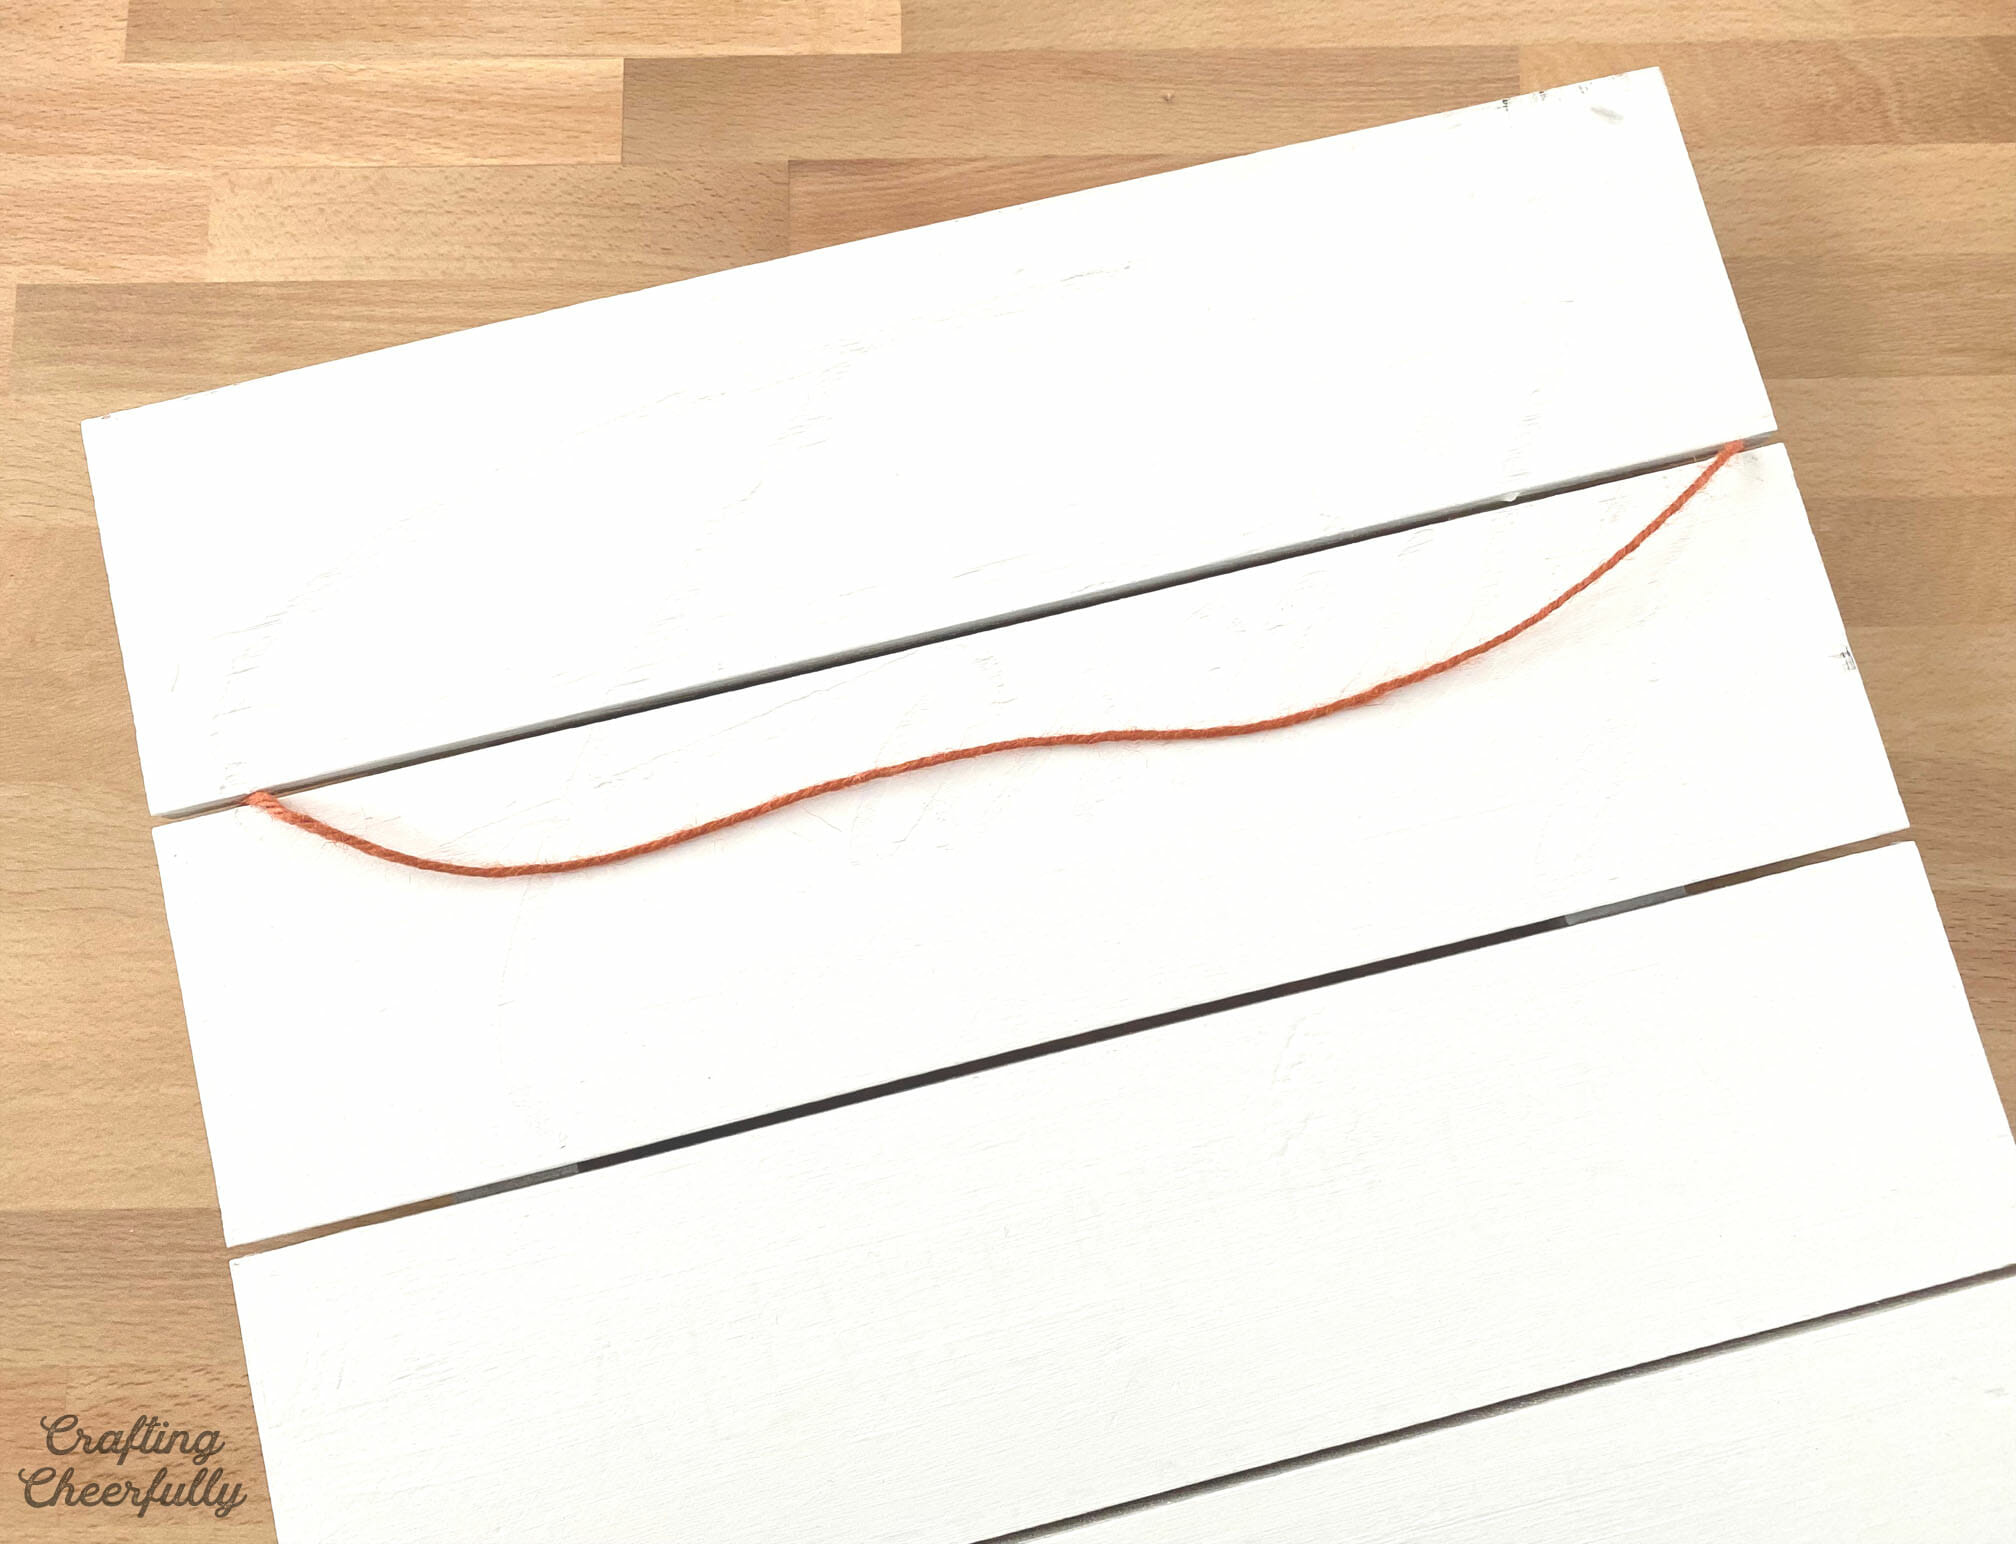 White board with orange twine taped to it.